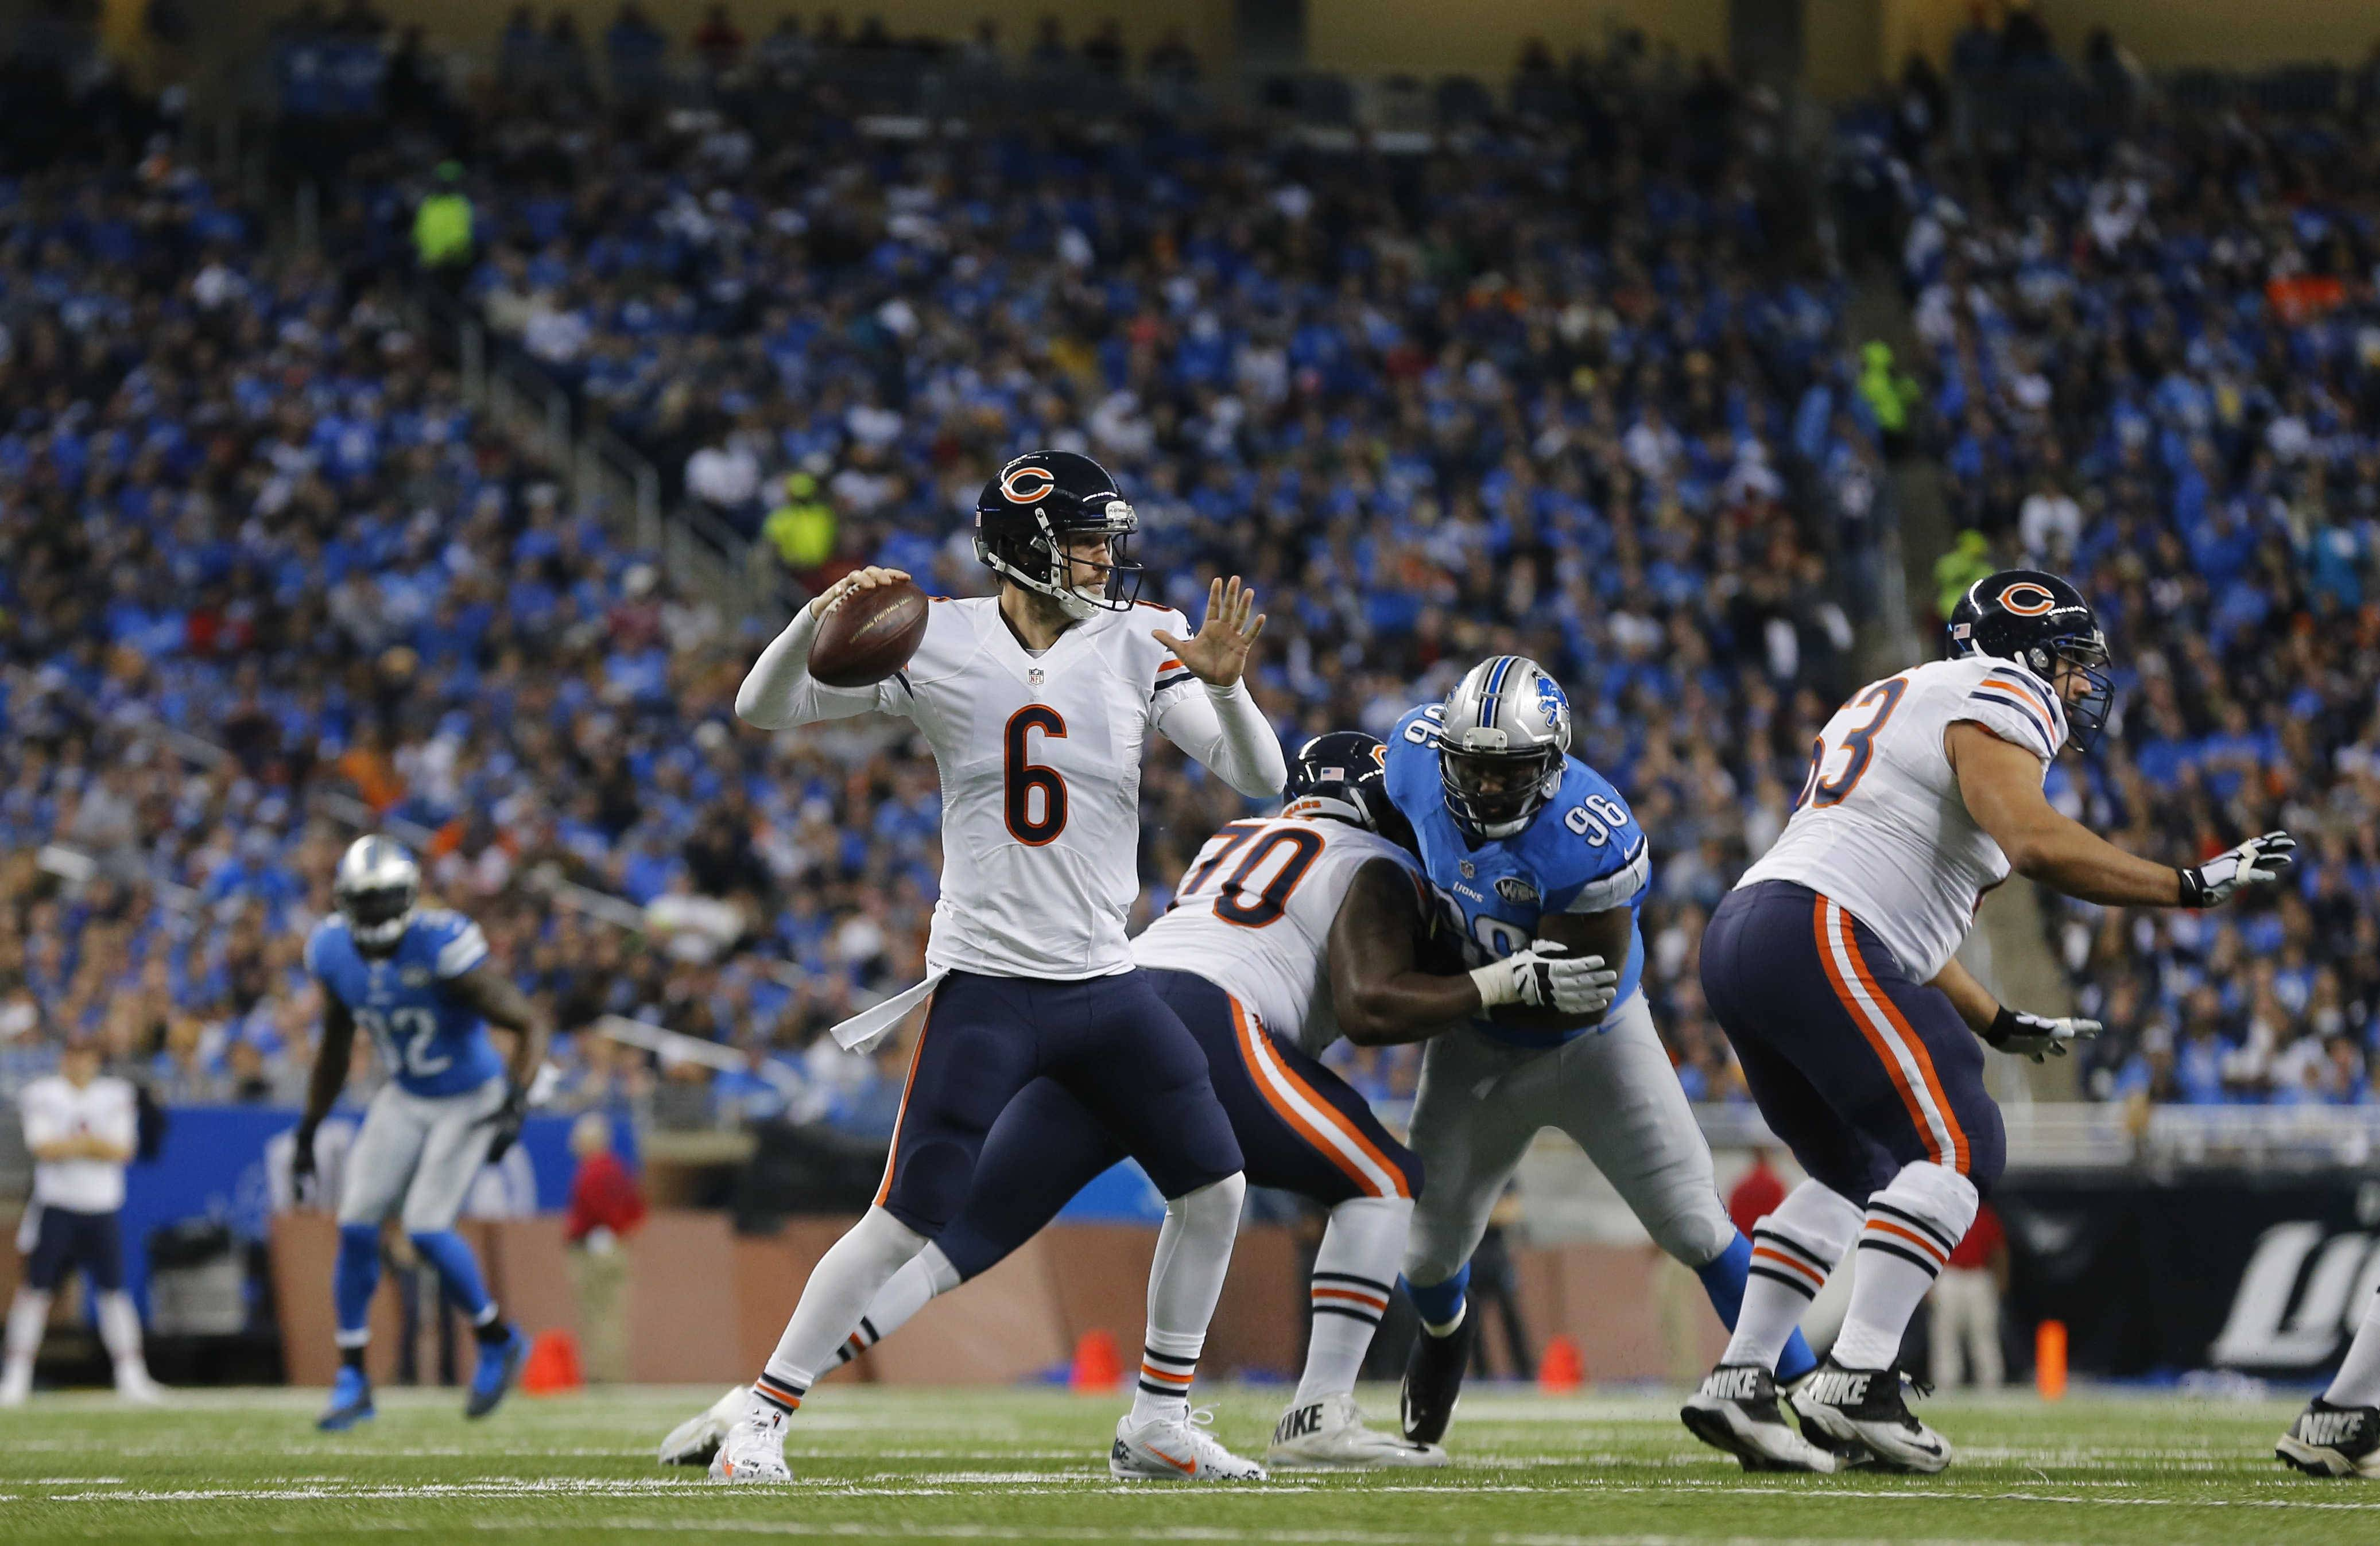 After taking an early 14-3 lead, Bears quarterback Jay Cutler and the offense sputtered the rest of the way in Thursday's loss to the Lions at Detroit.